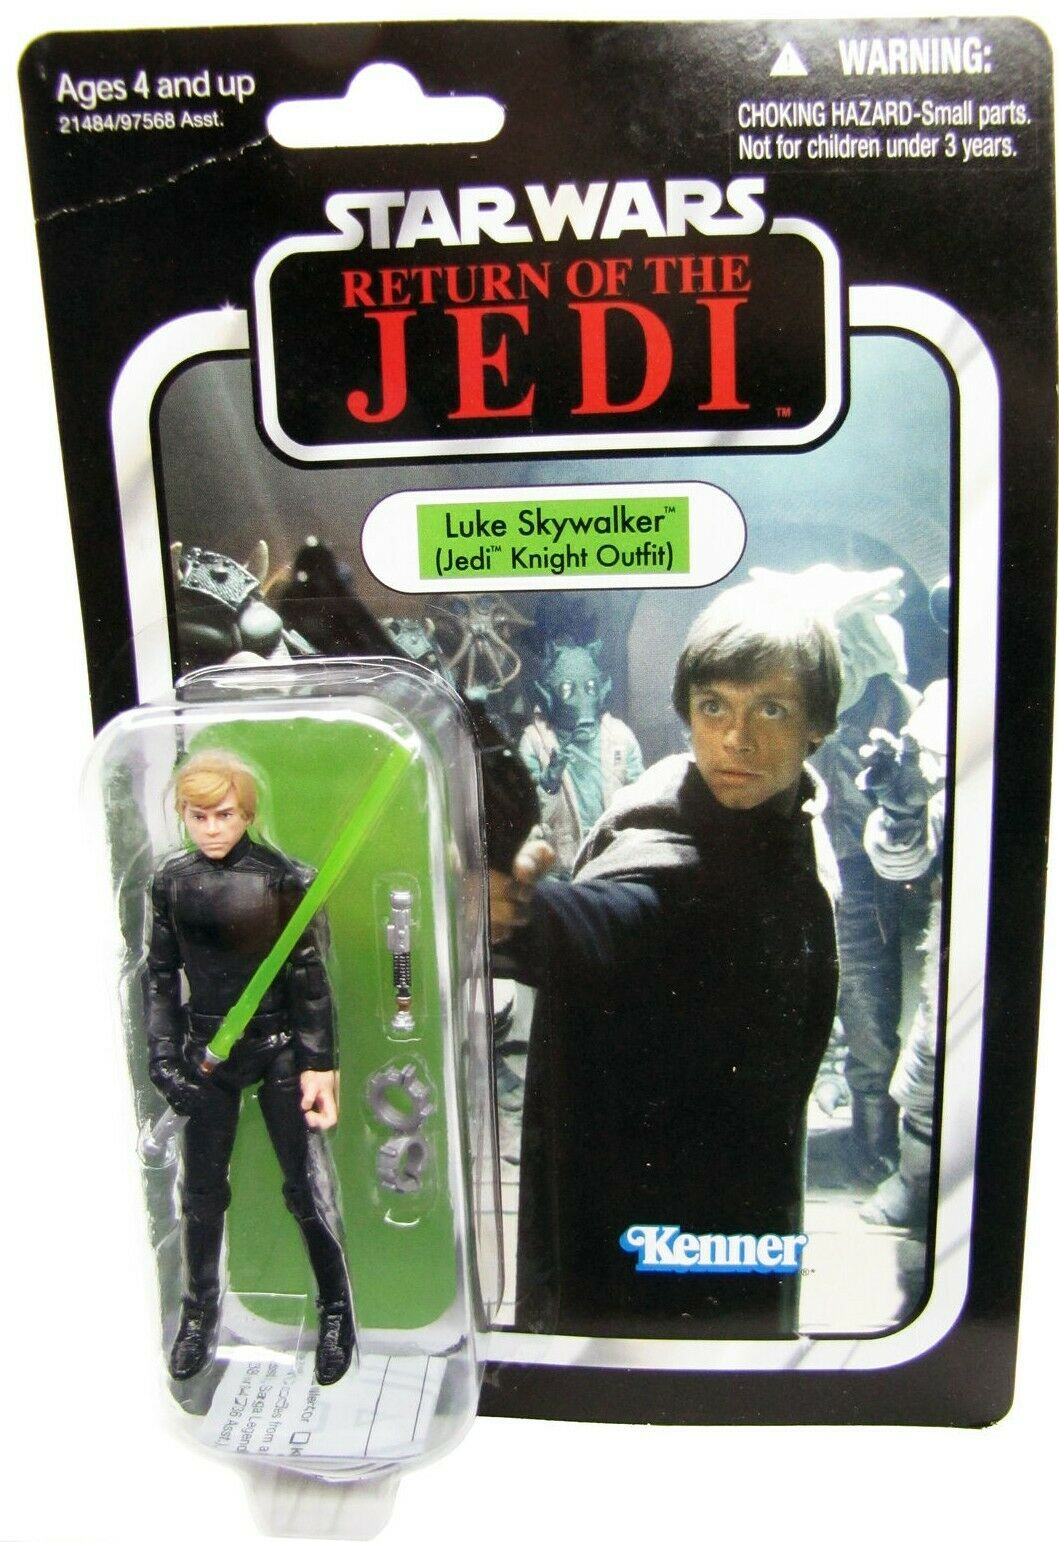 2010 Star Wars Vintage Collection Return of the Jedi LUKE SKYWALKER JEDI KNIGHT